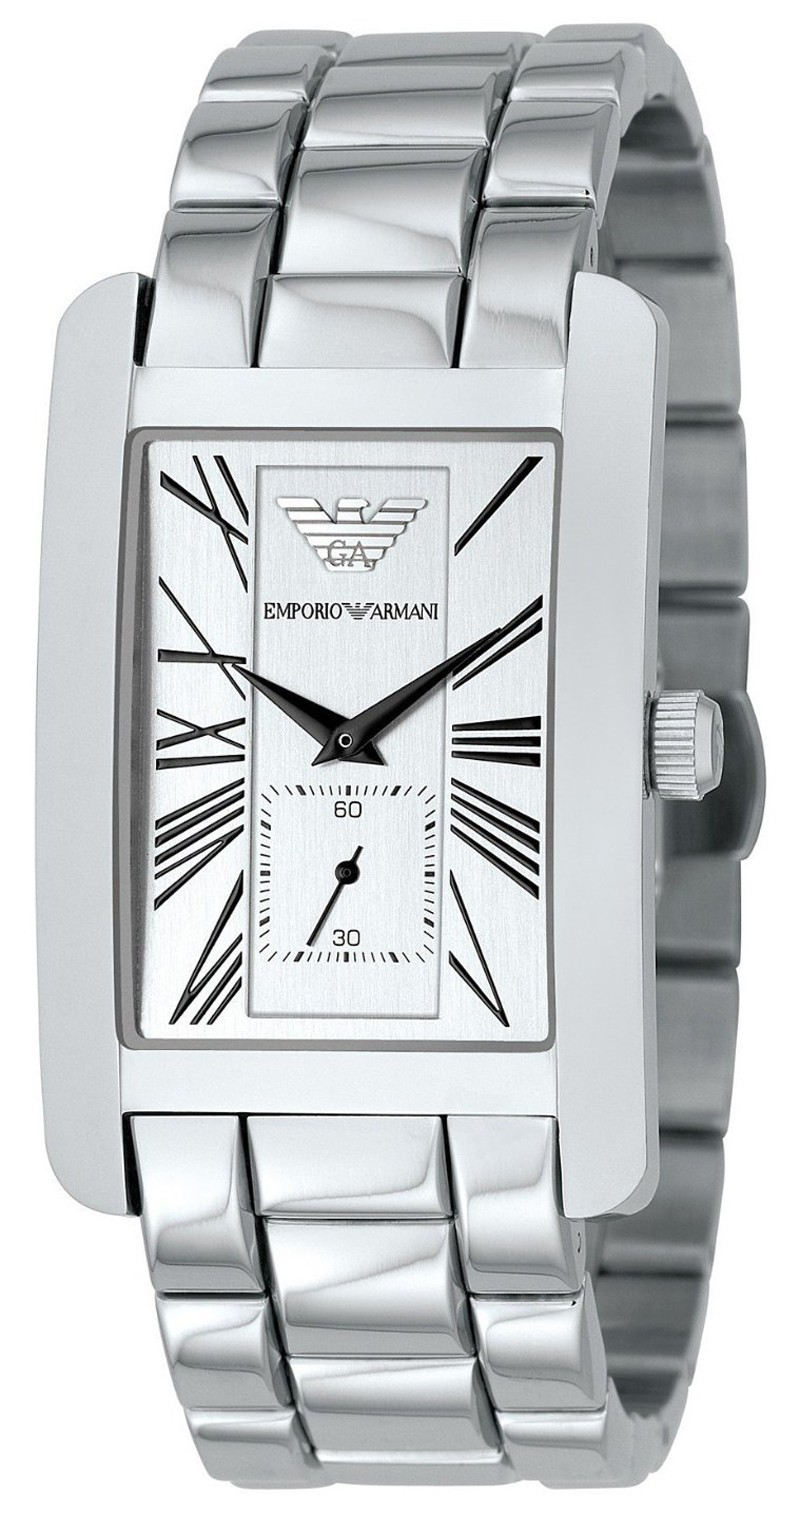 Emporio Armani Classics Series Stainless Steel Gents Square Face Watch AR0145